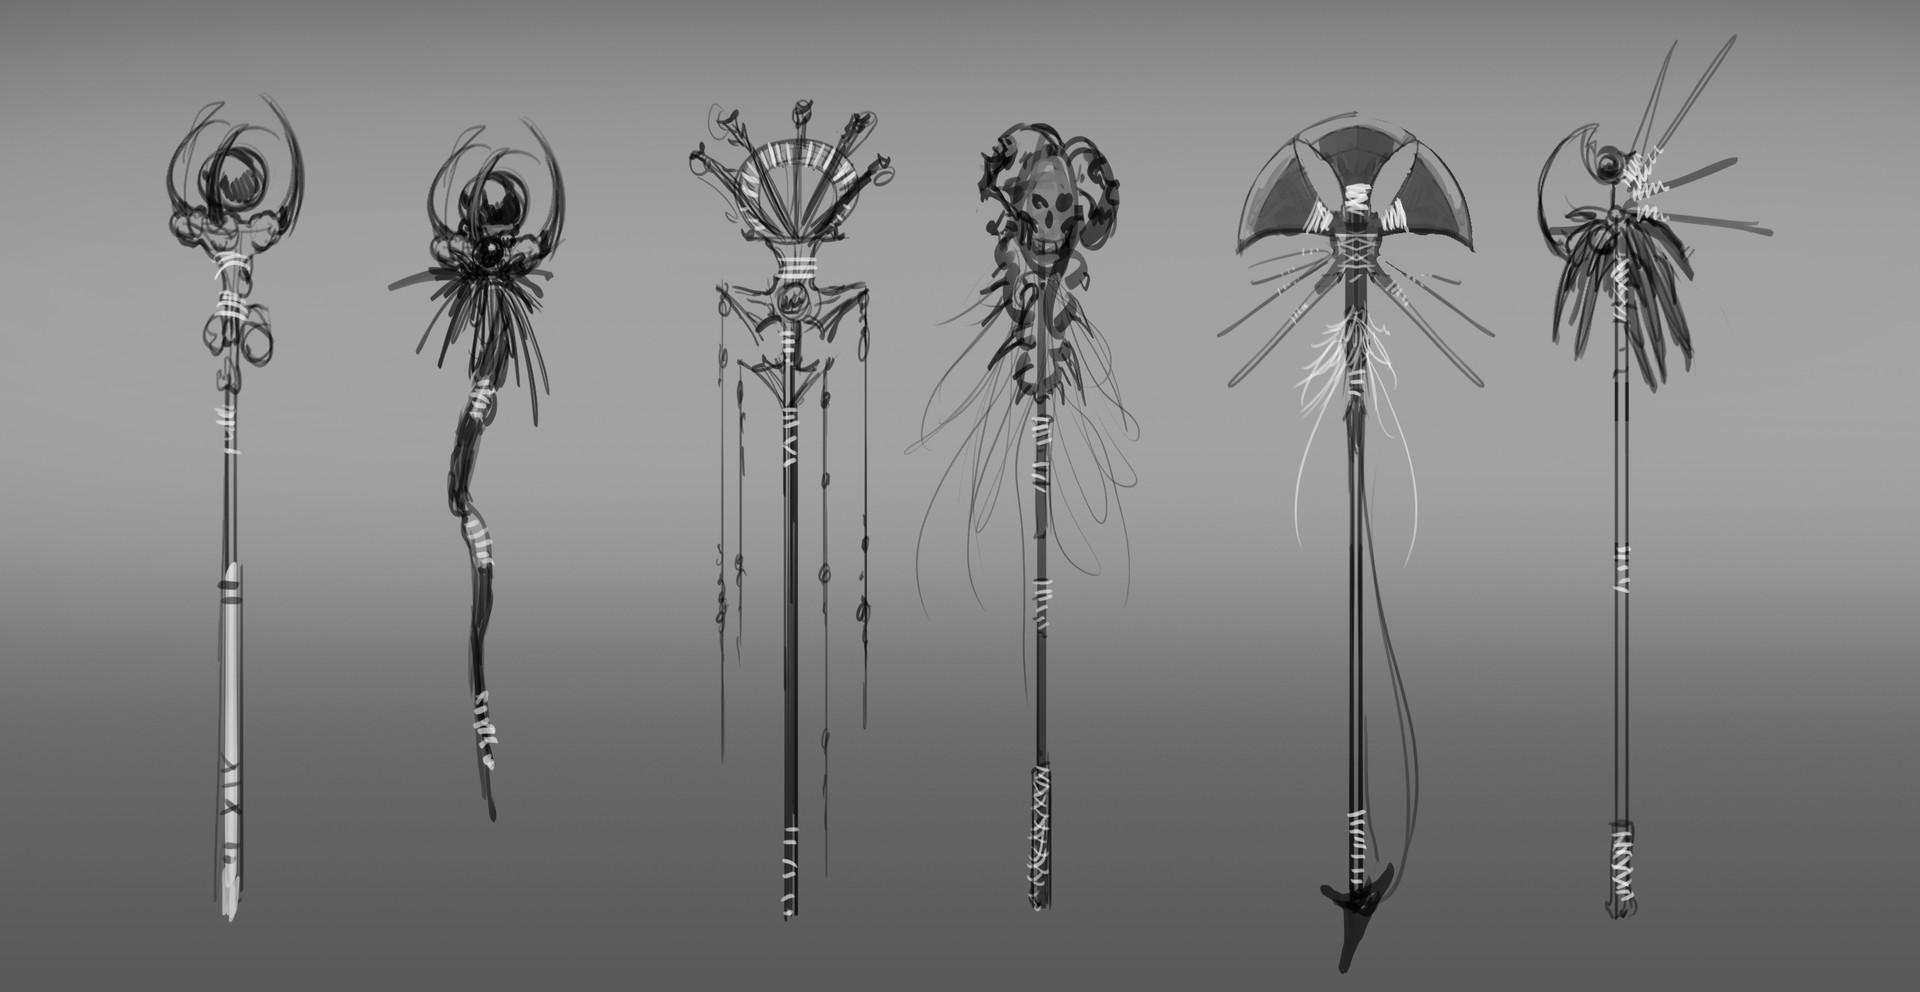 Luis carrasco 05 weapons rough sketches